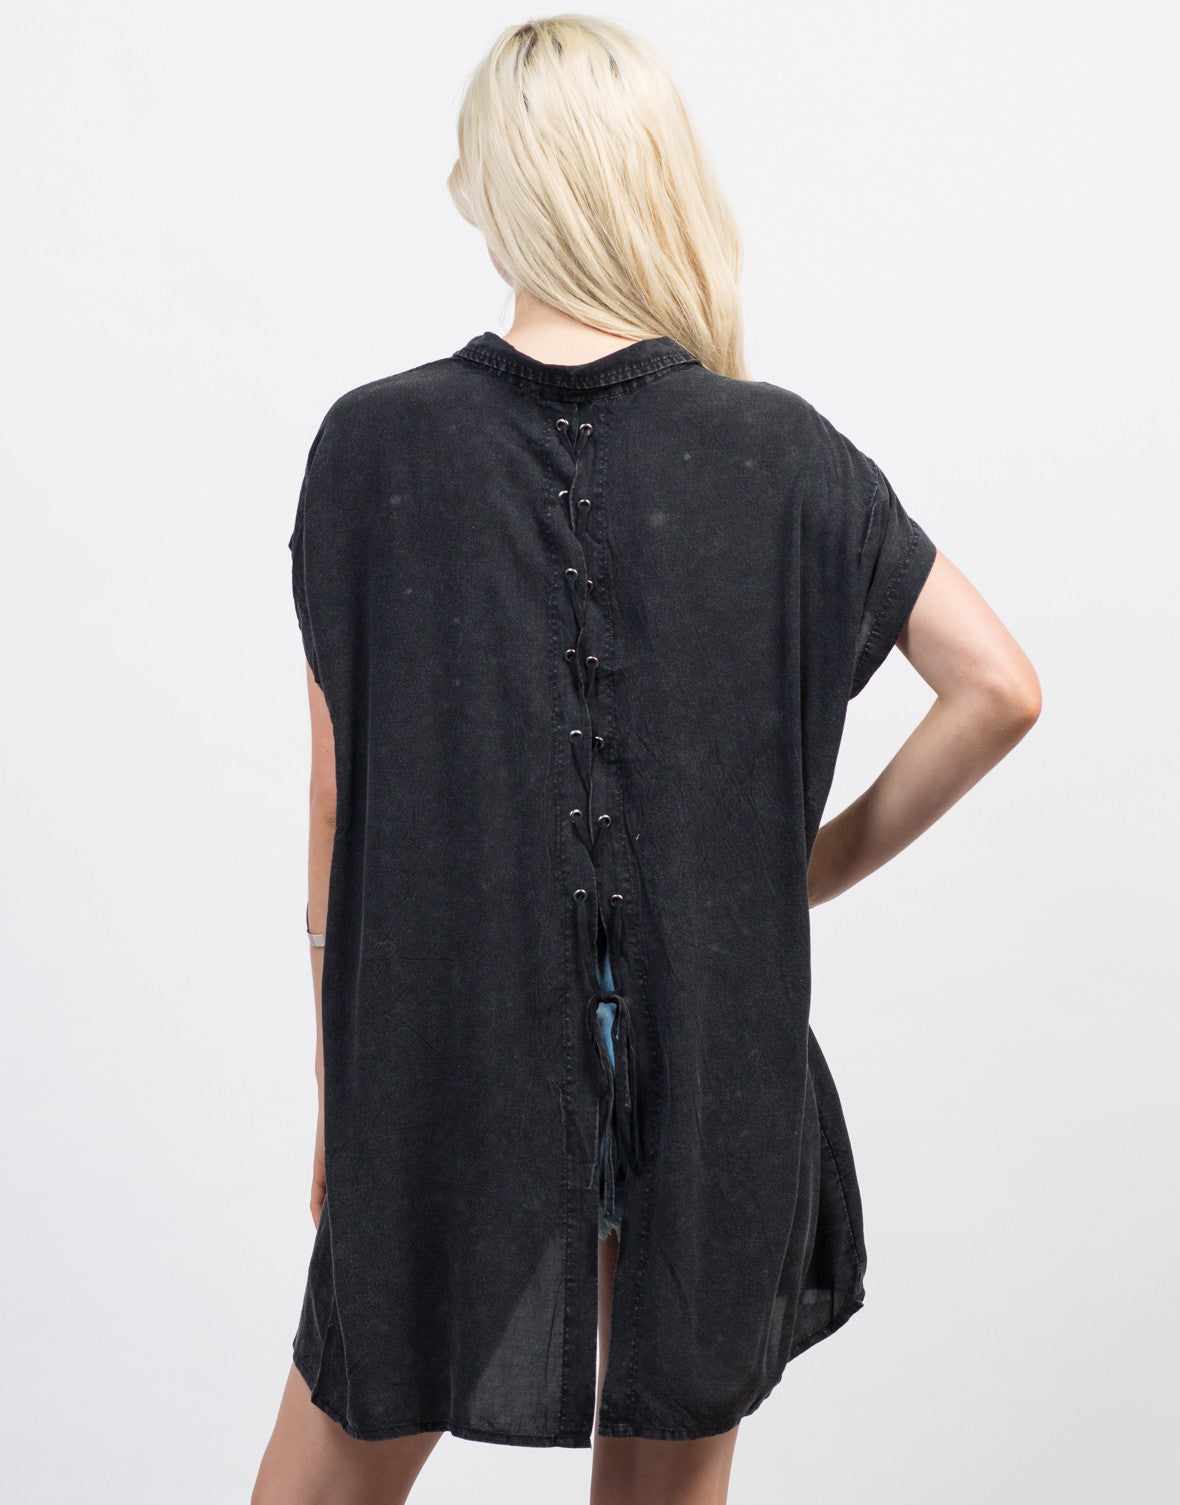 Back View of Lace Back Oversized Tee